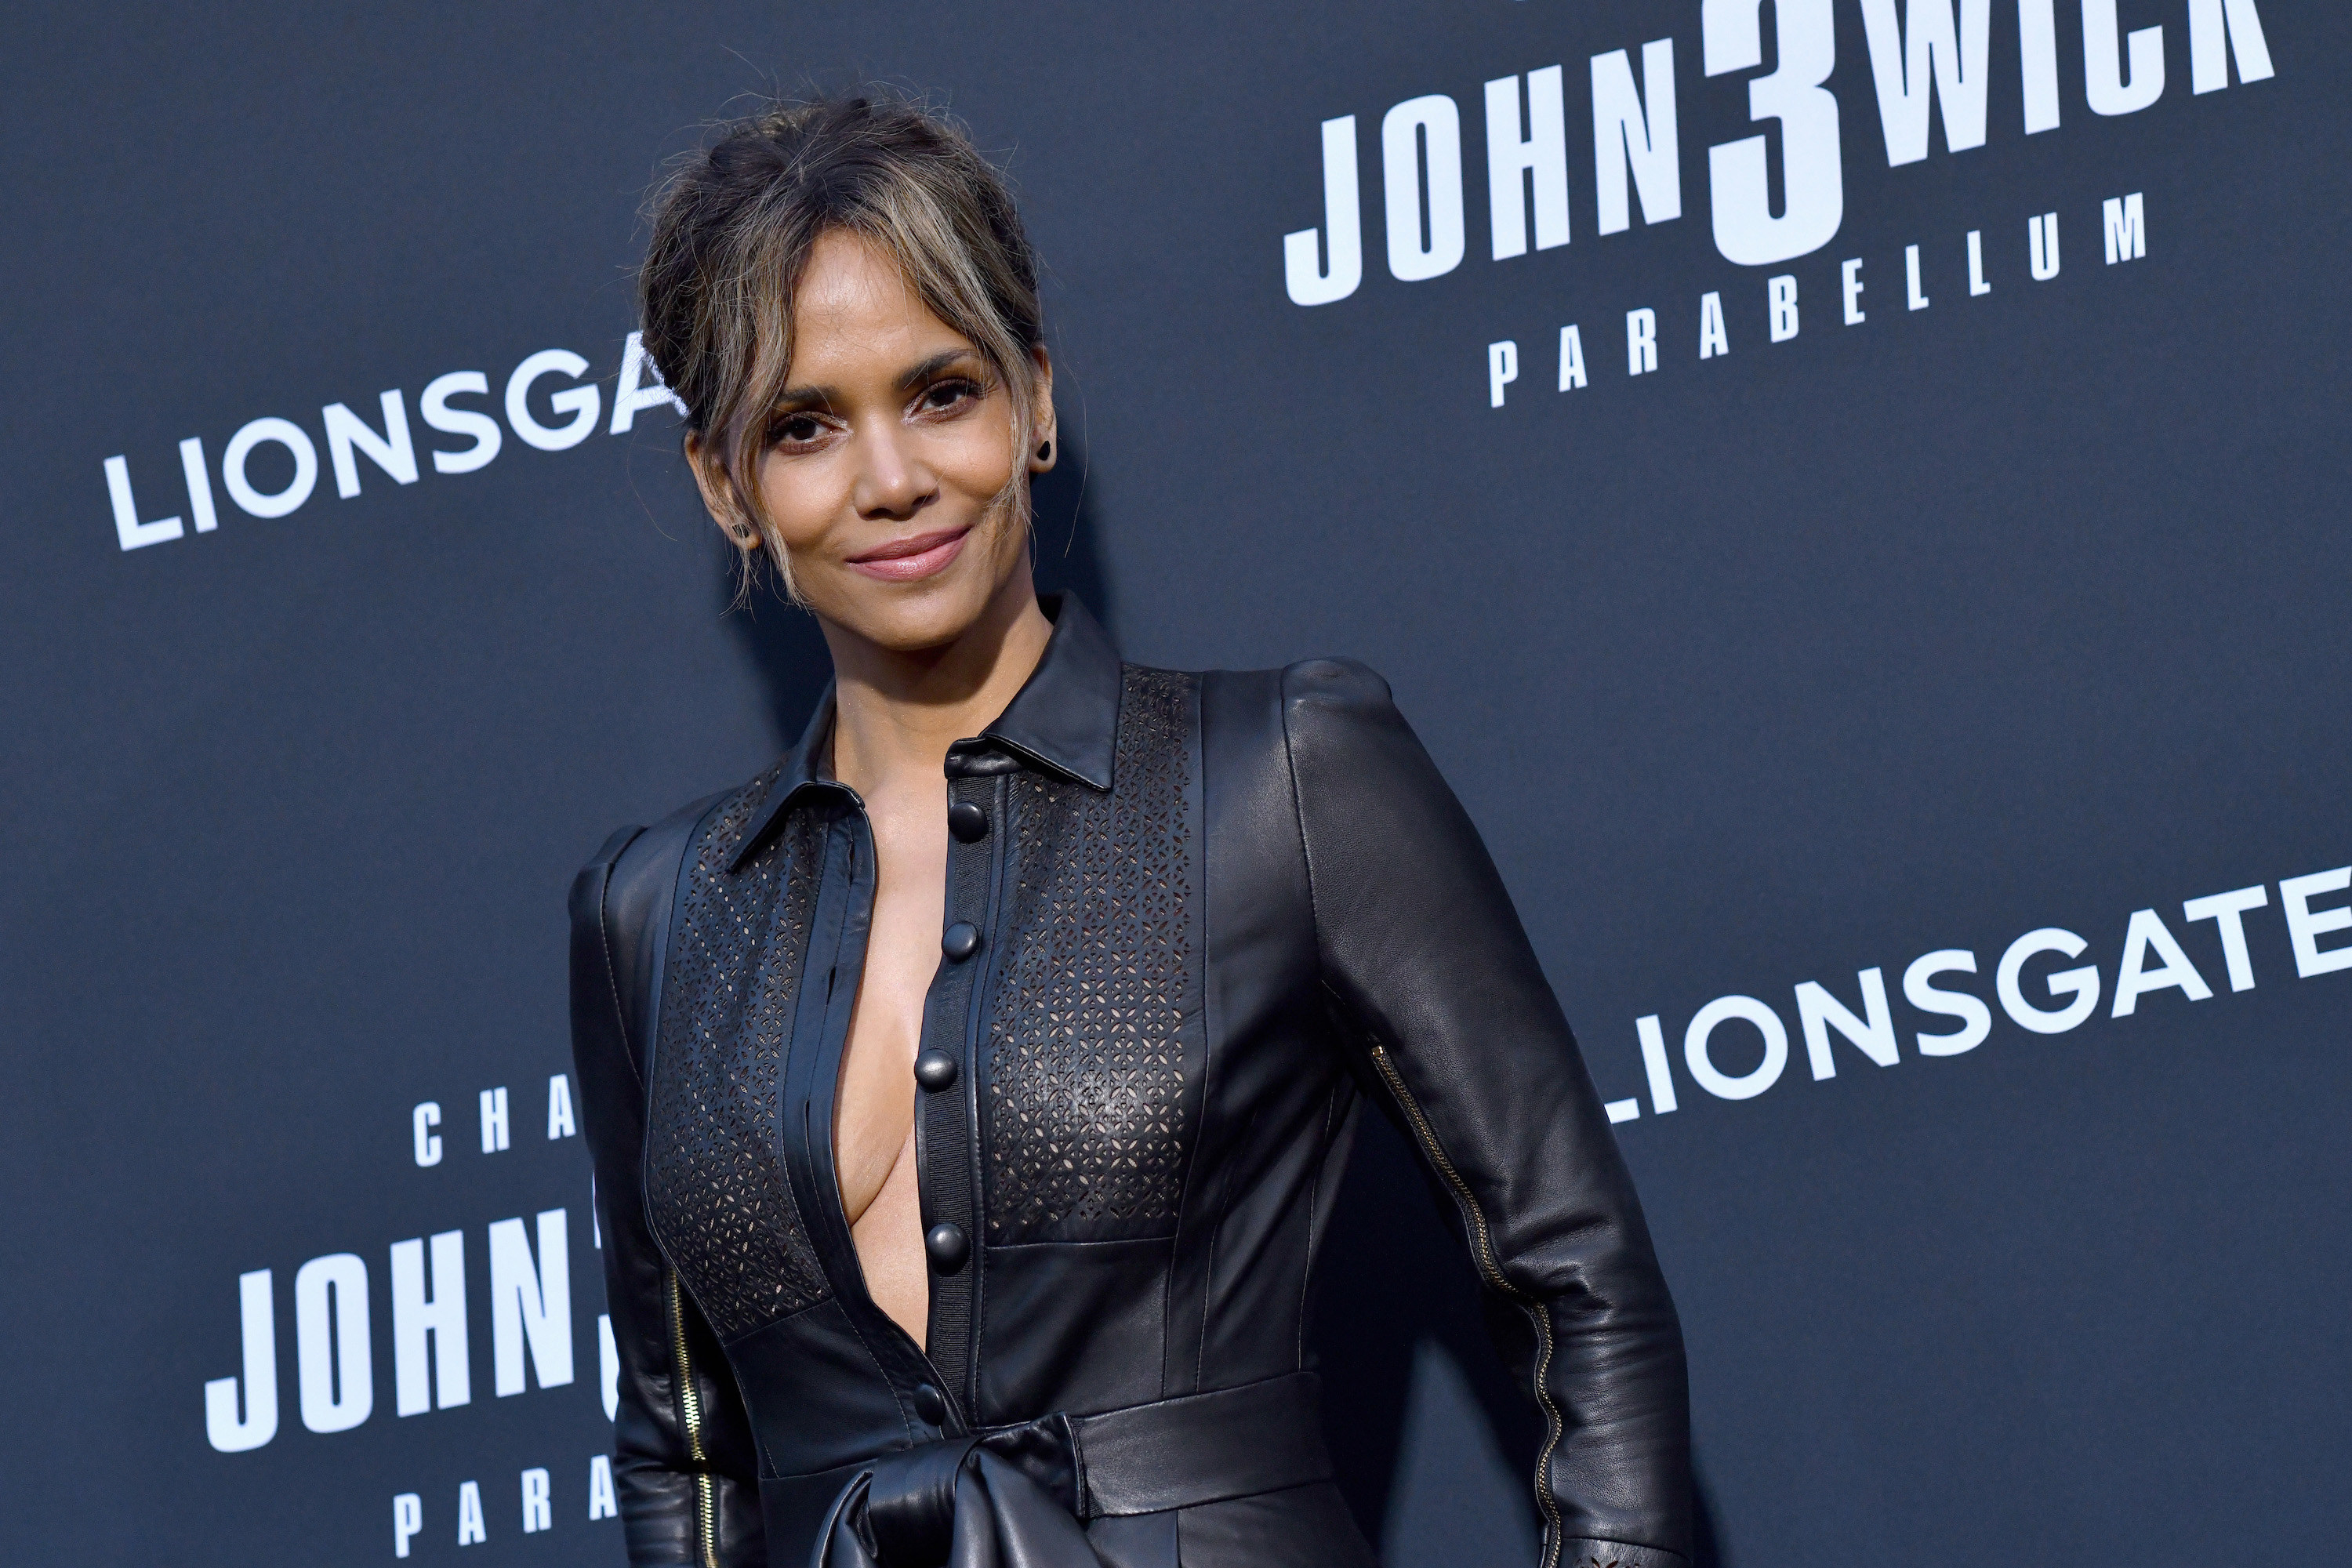 Halle Berry wears a black outfit while attending a special screening of Lionsgate's John Wick: Chapter 3 - Parabellum on May 15, 2019 in Hollywood, California